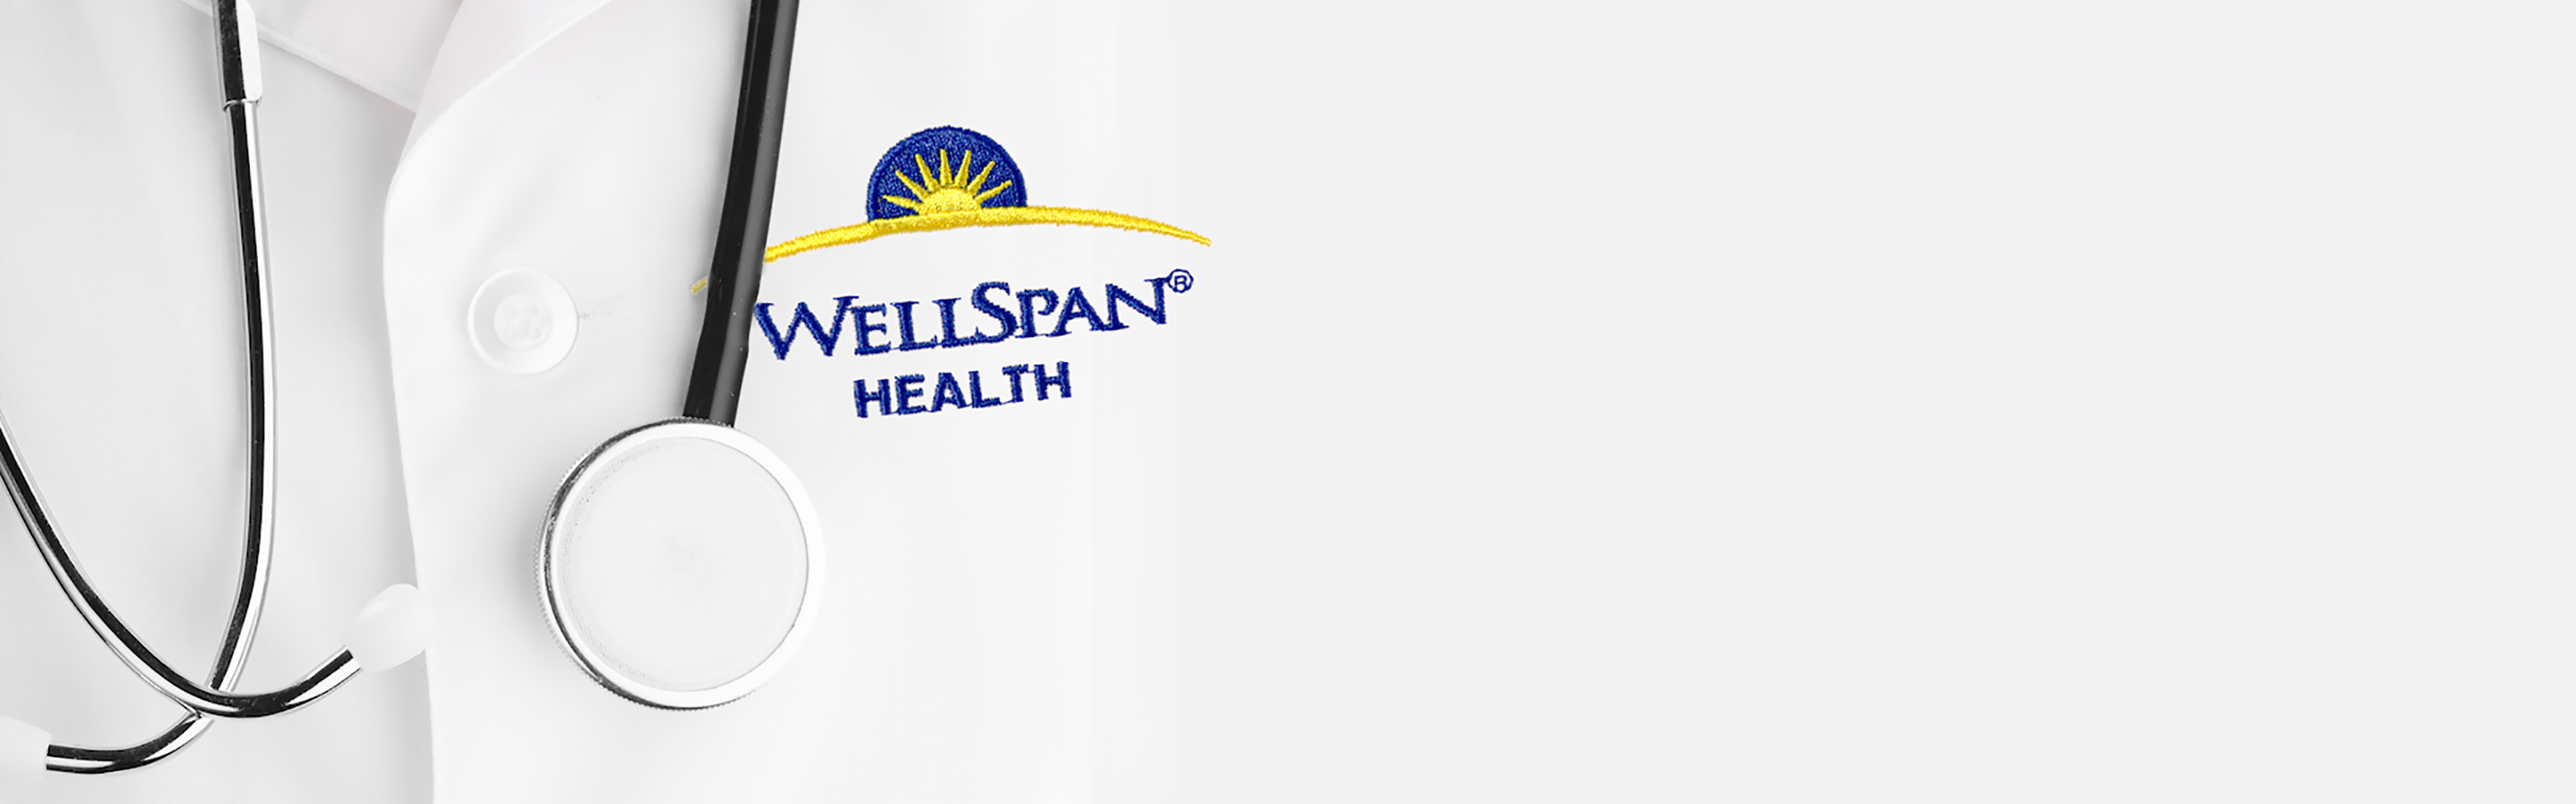 Career Opportunities | WellSpan Careers